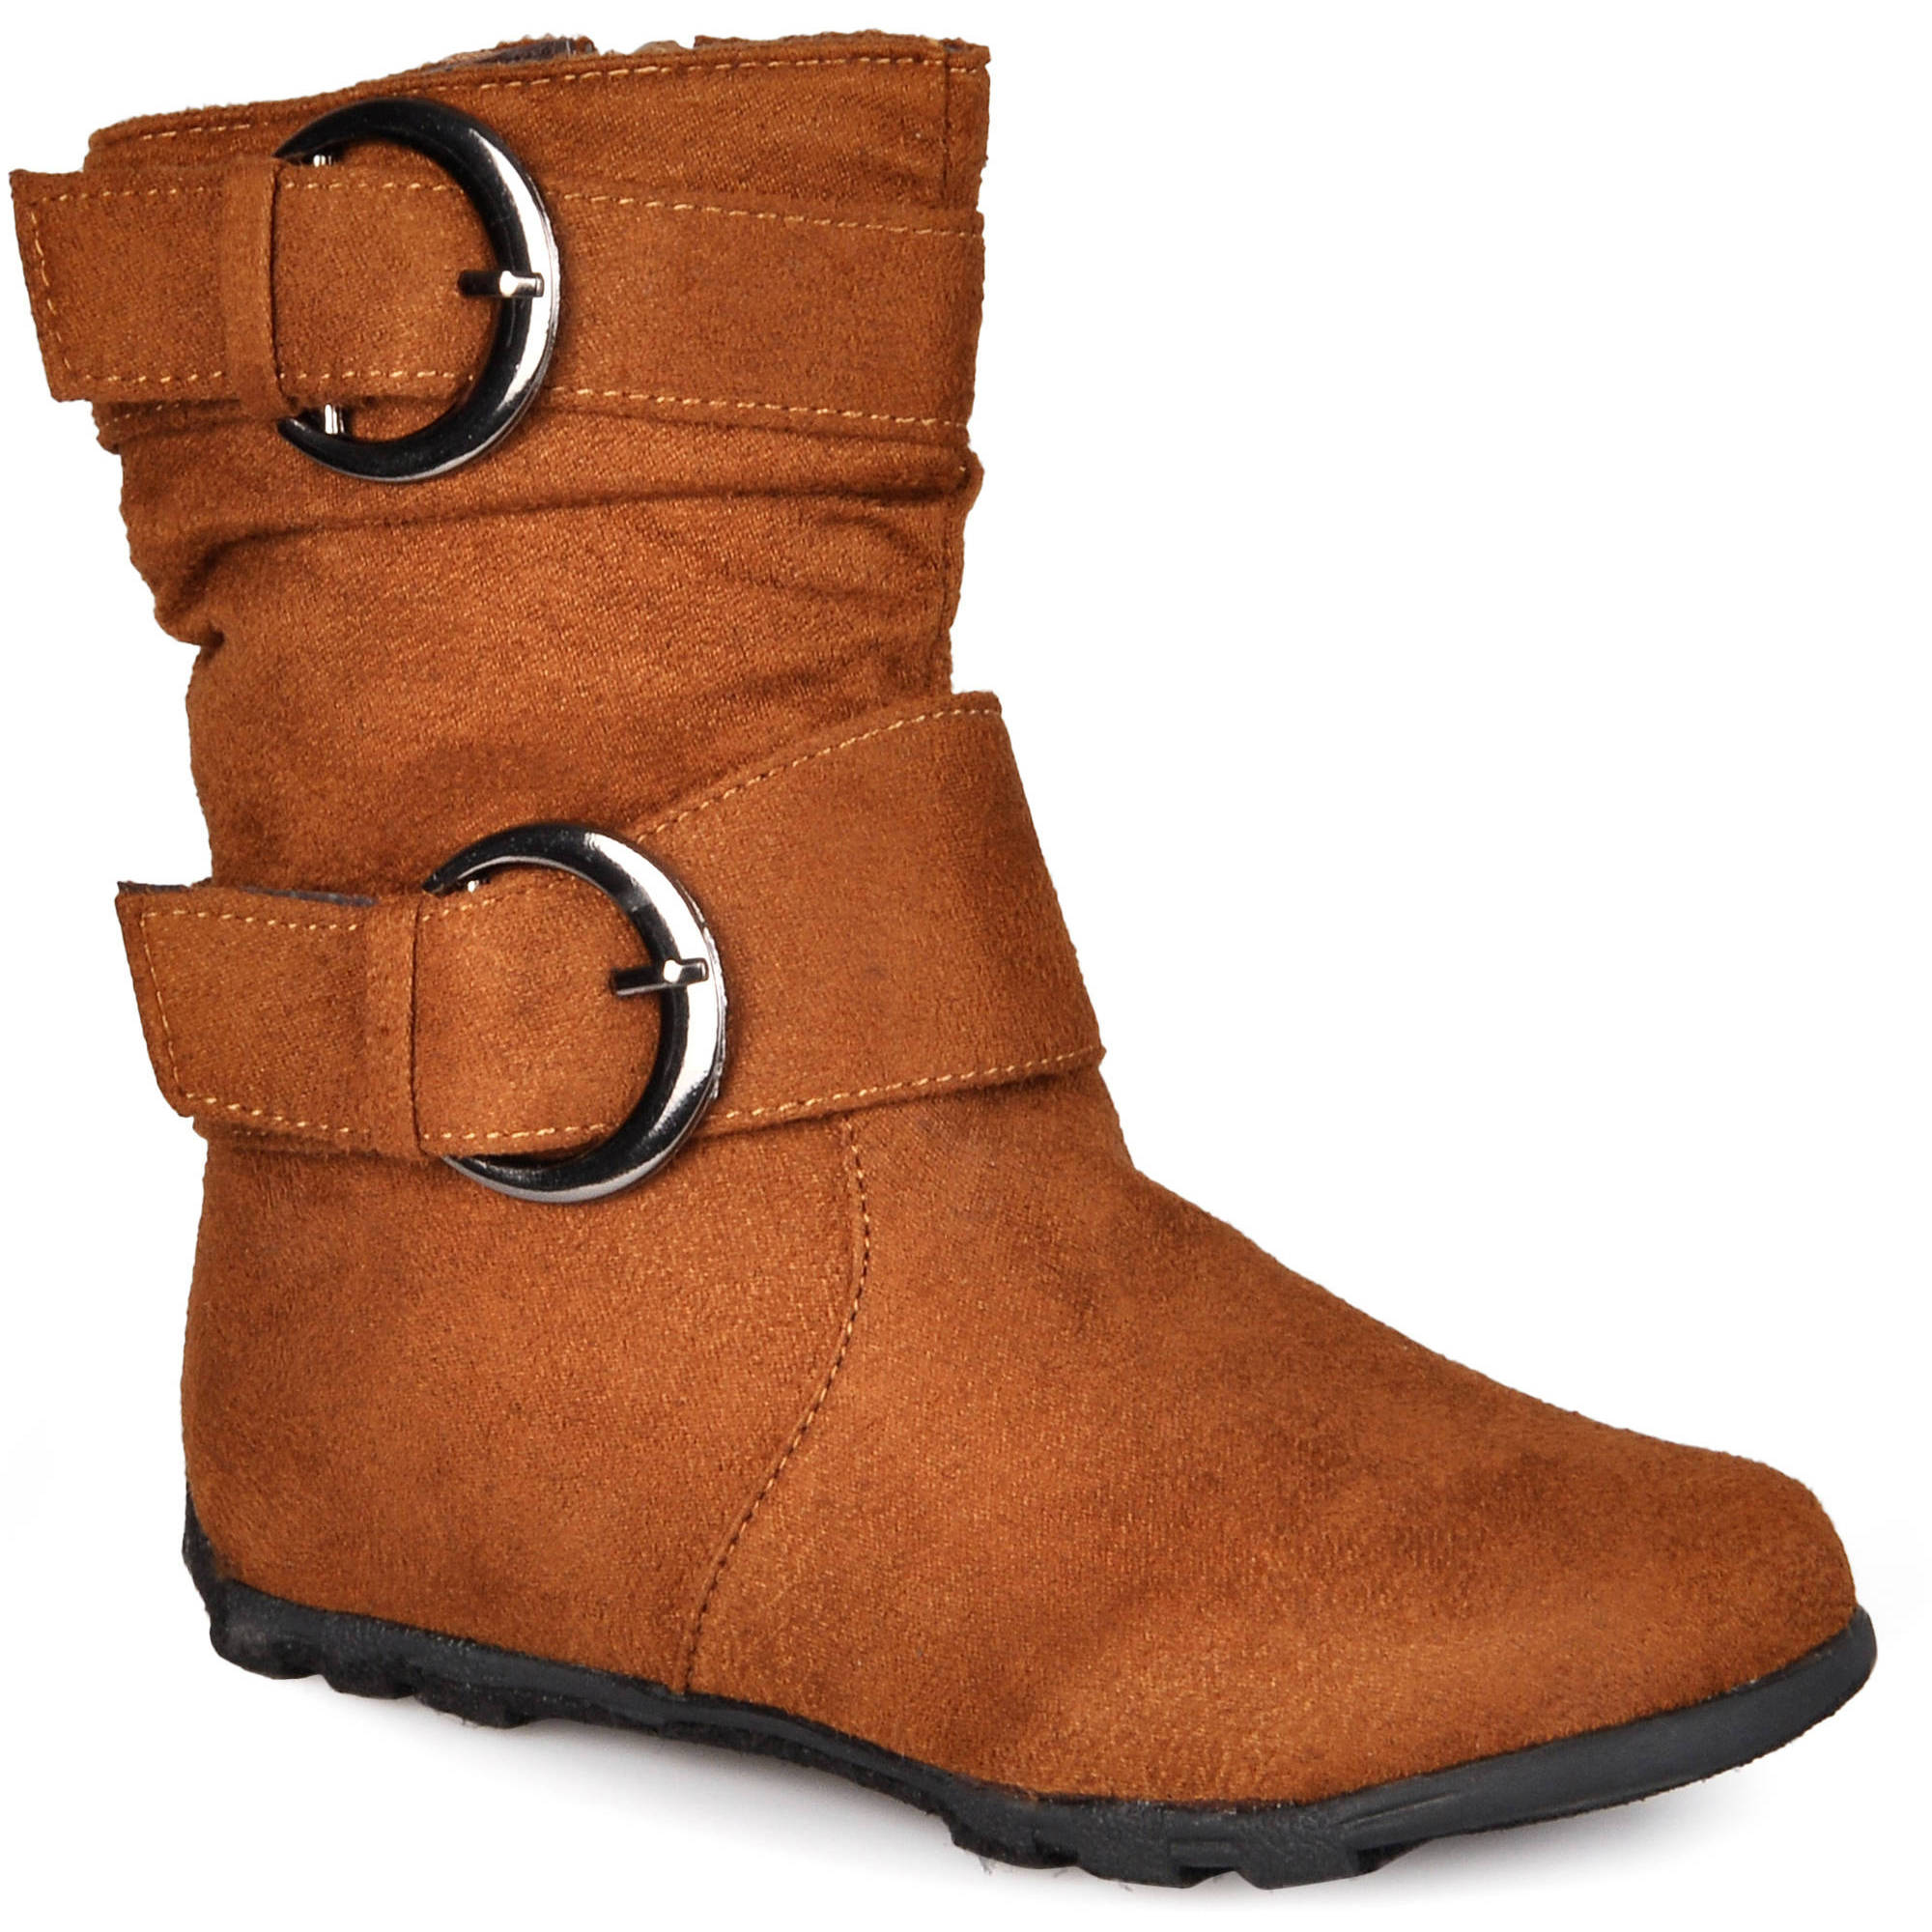 Brinley Co. Girls Buckle Accent Mid-calf Boots